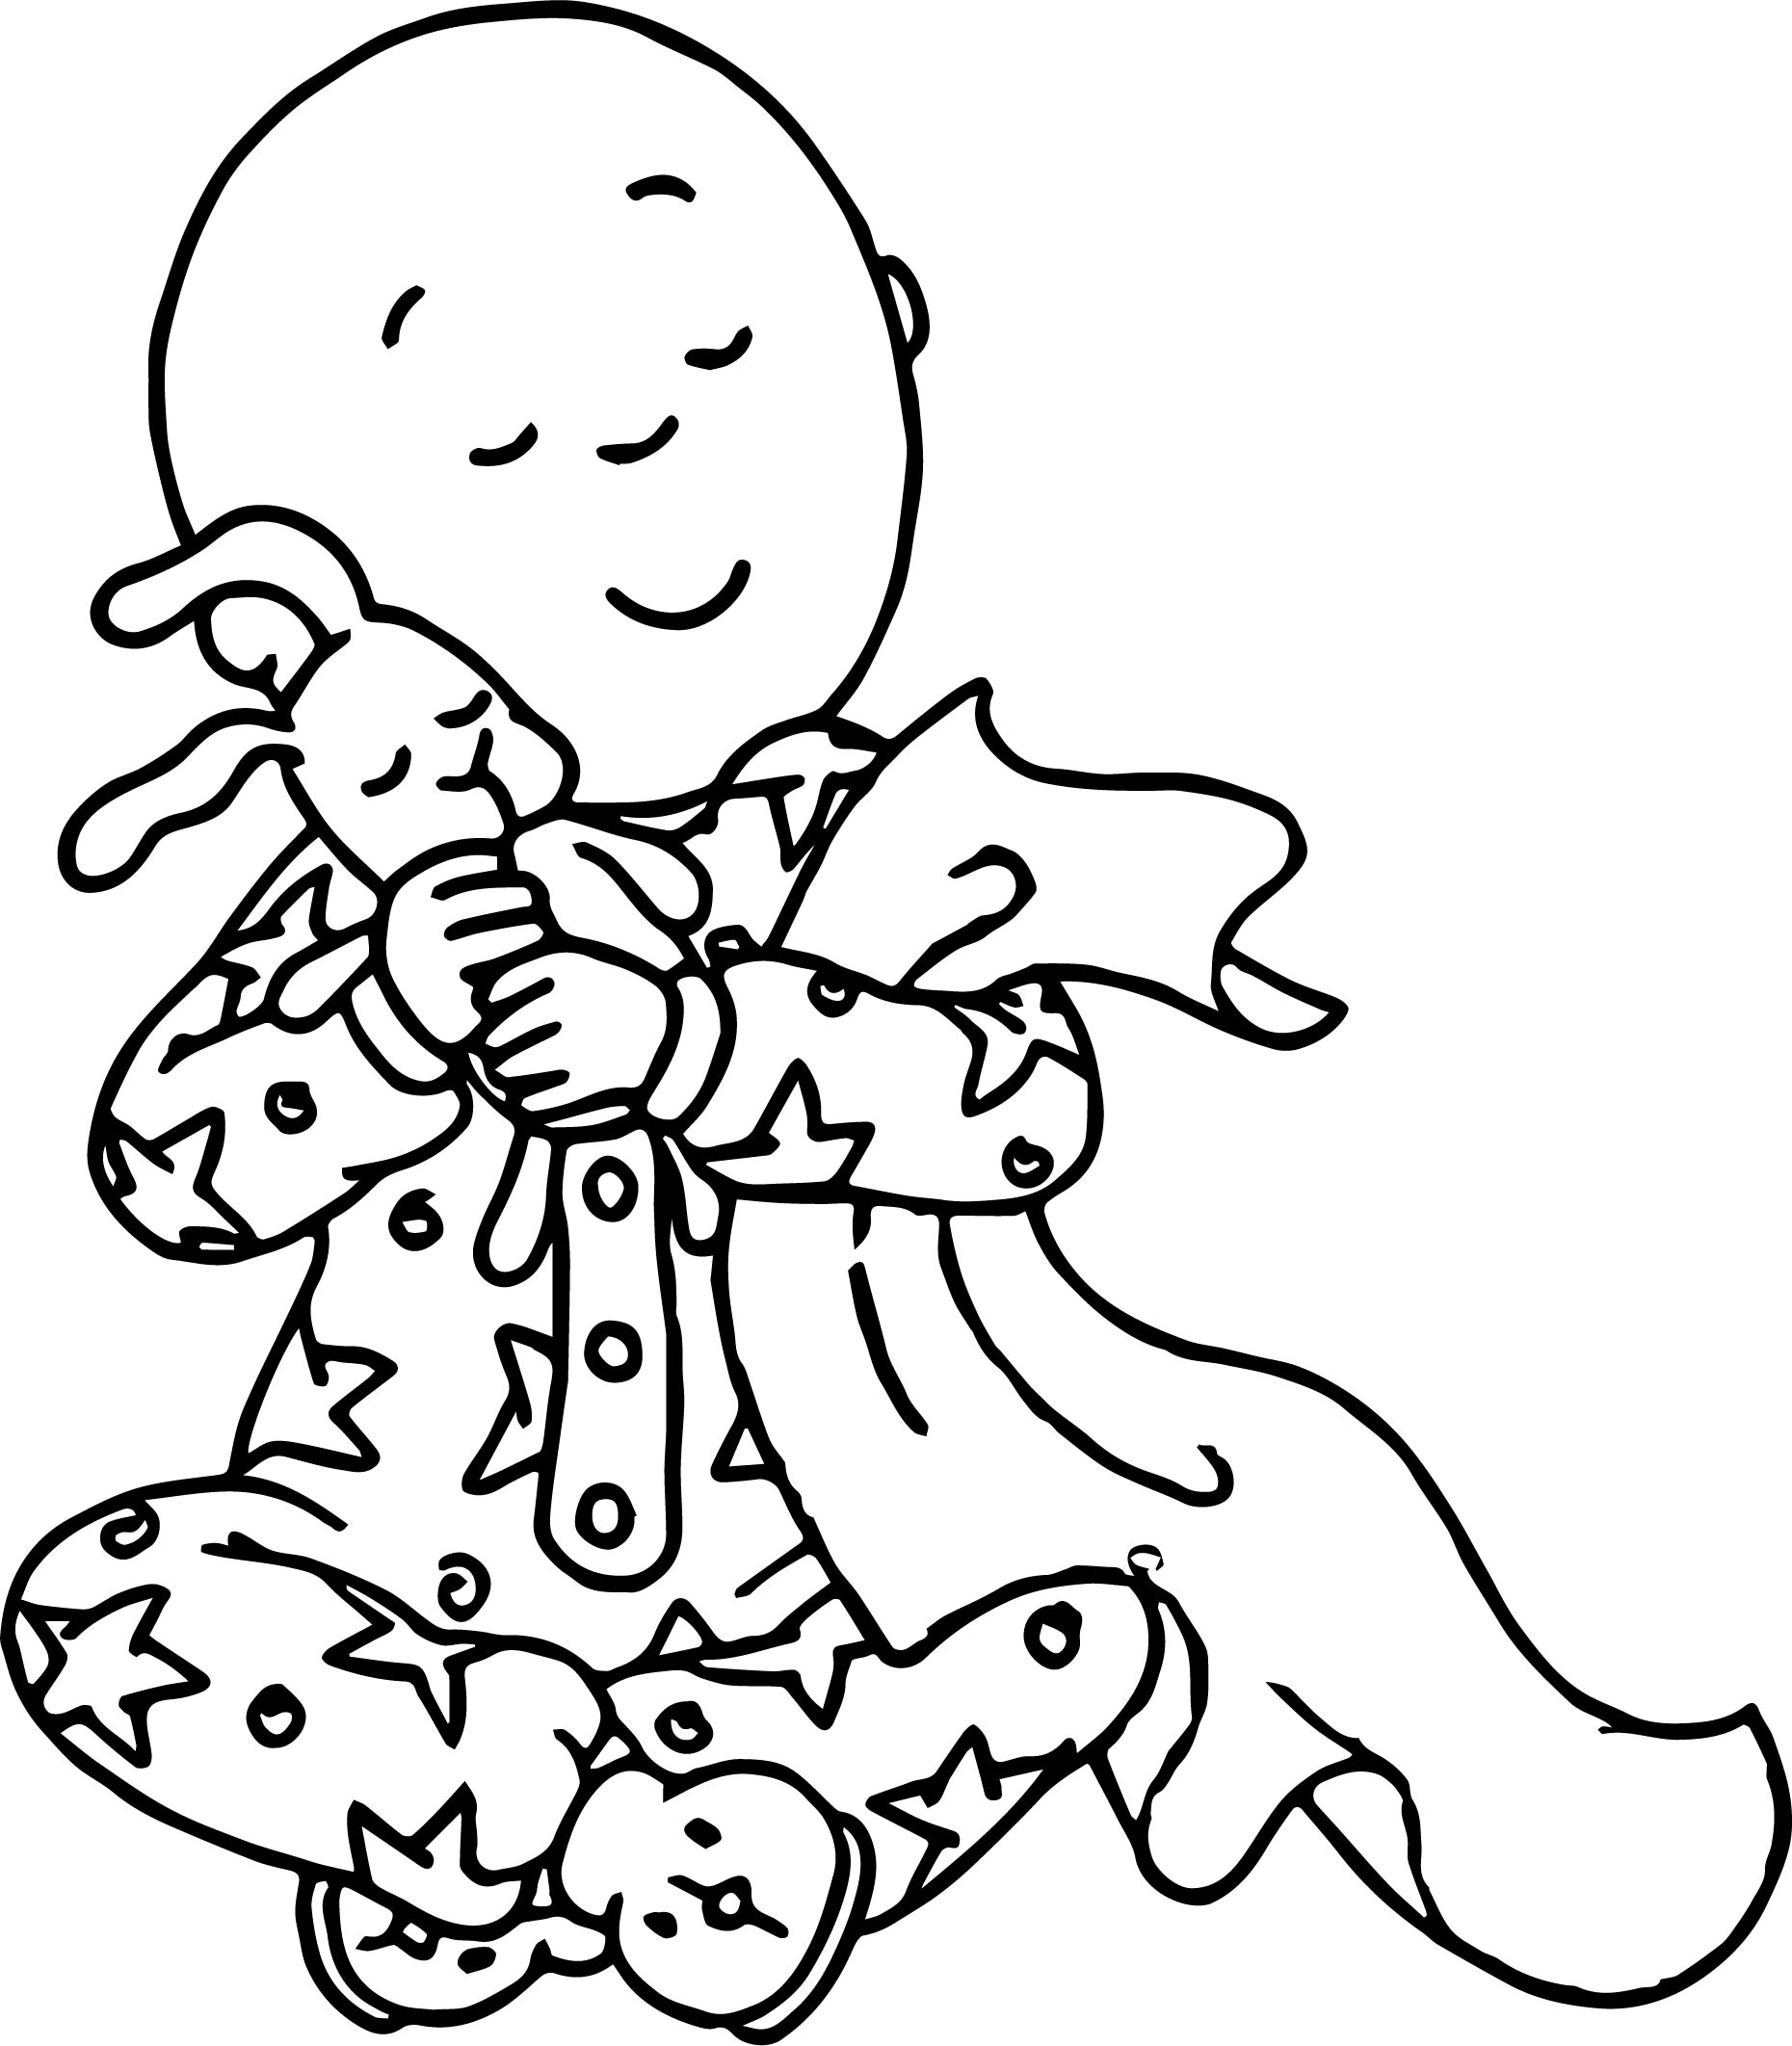 Caillou Love Toy Bunny Coloring Page | Wecoloringpage.com